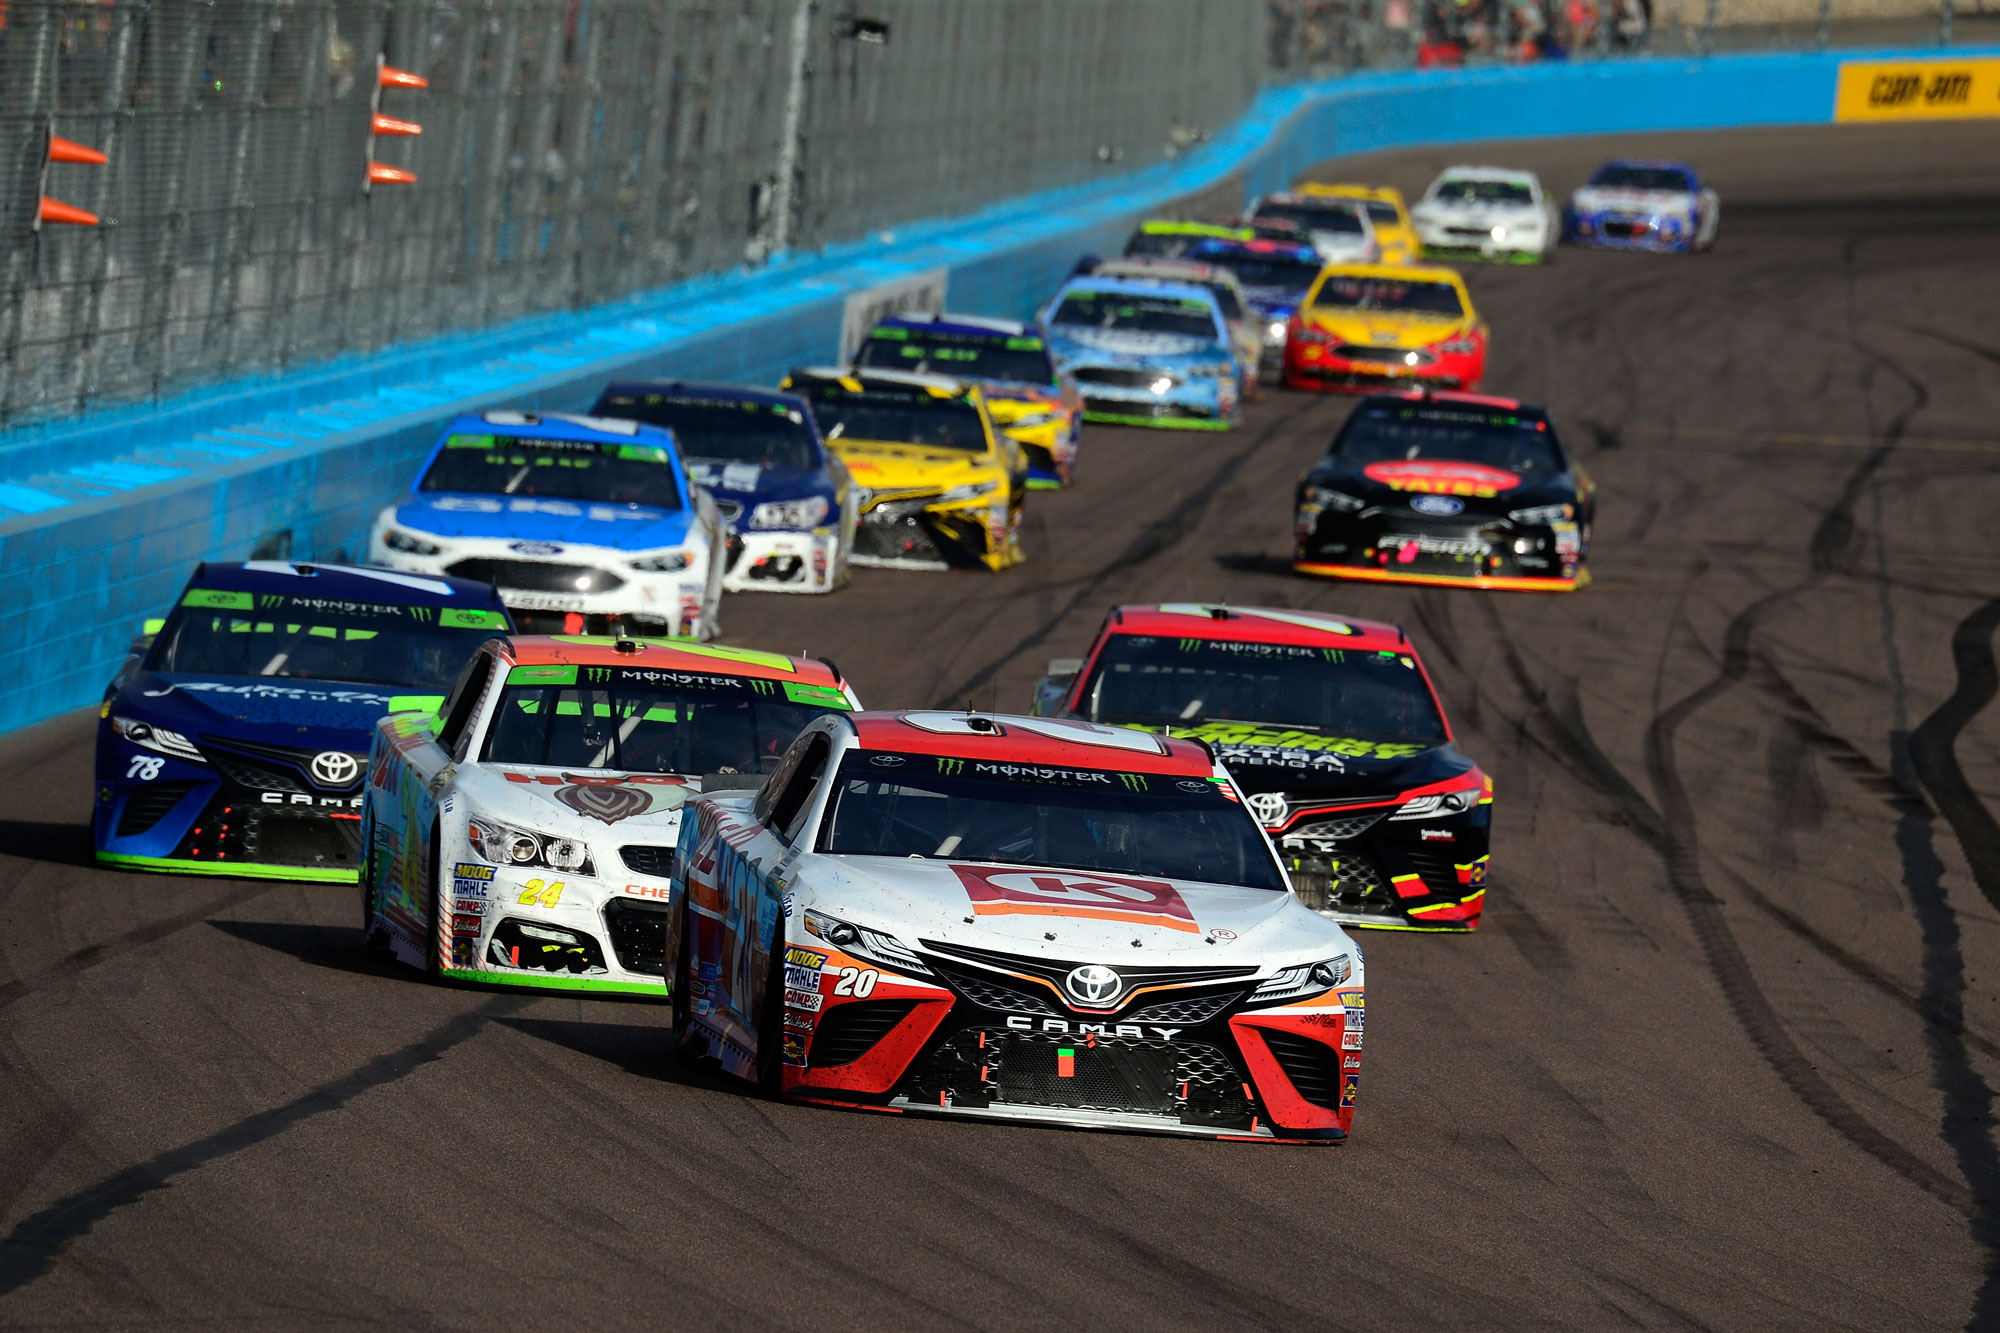 NASCAR drivers win big prize money, but they say it takes just as ...